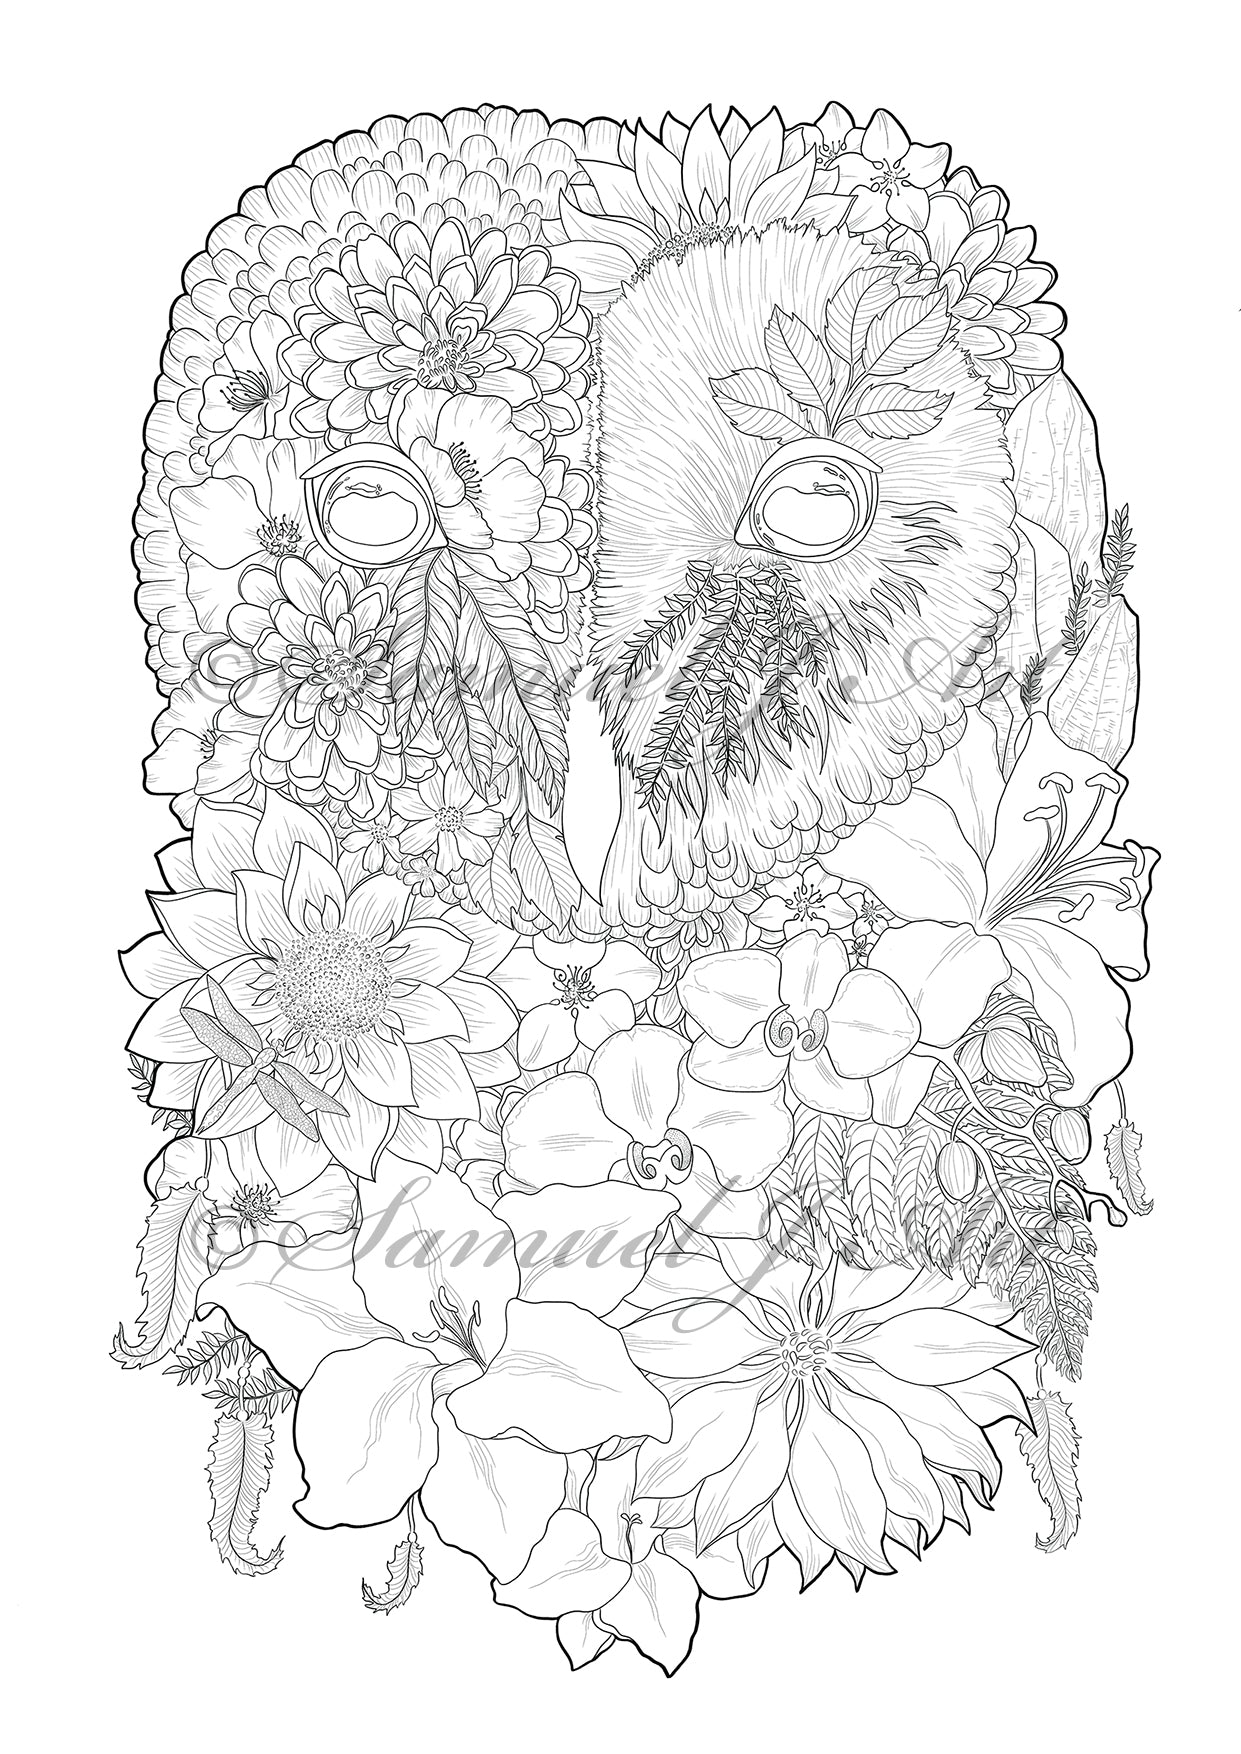 Floral Owl - Colouring Template - Digital Download